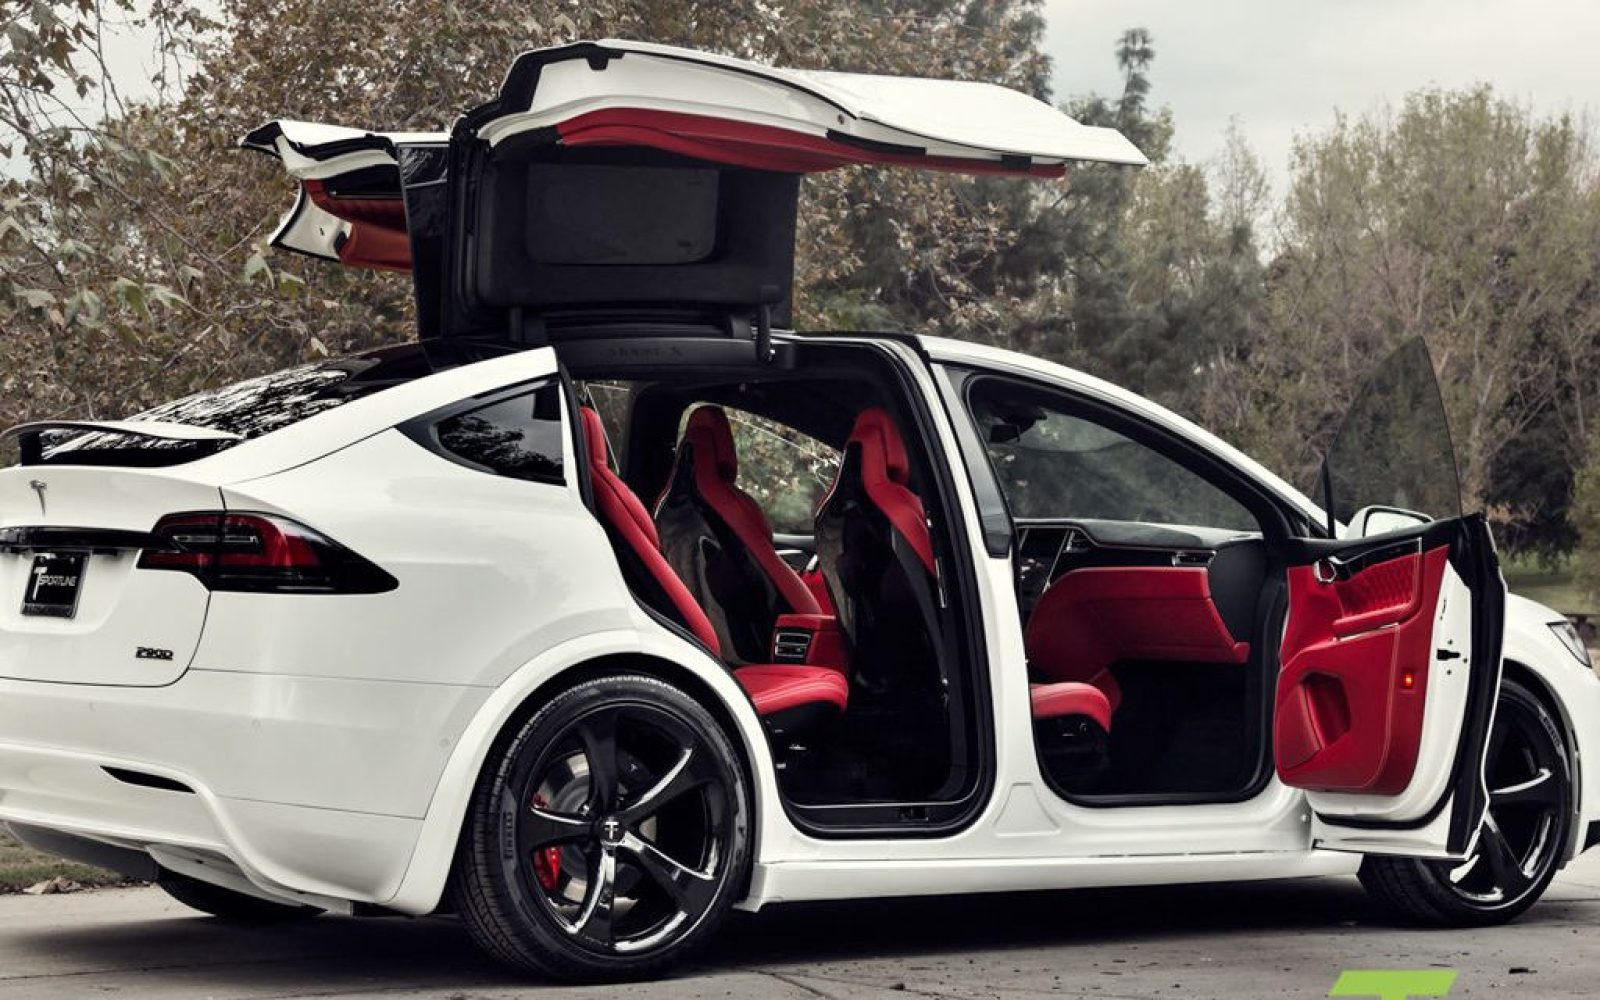 Tesla P90d For Sale >> A custom Tesla Model X with a Bentley's interior goes on sale for $180,000 - Electrek